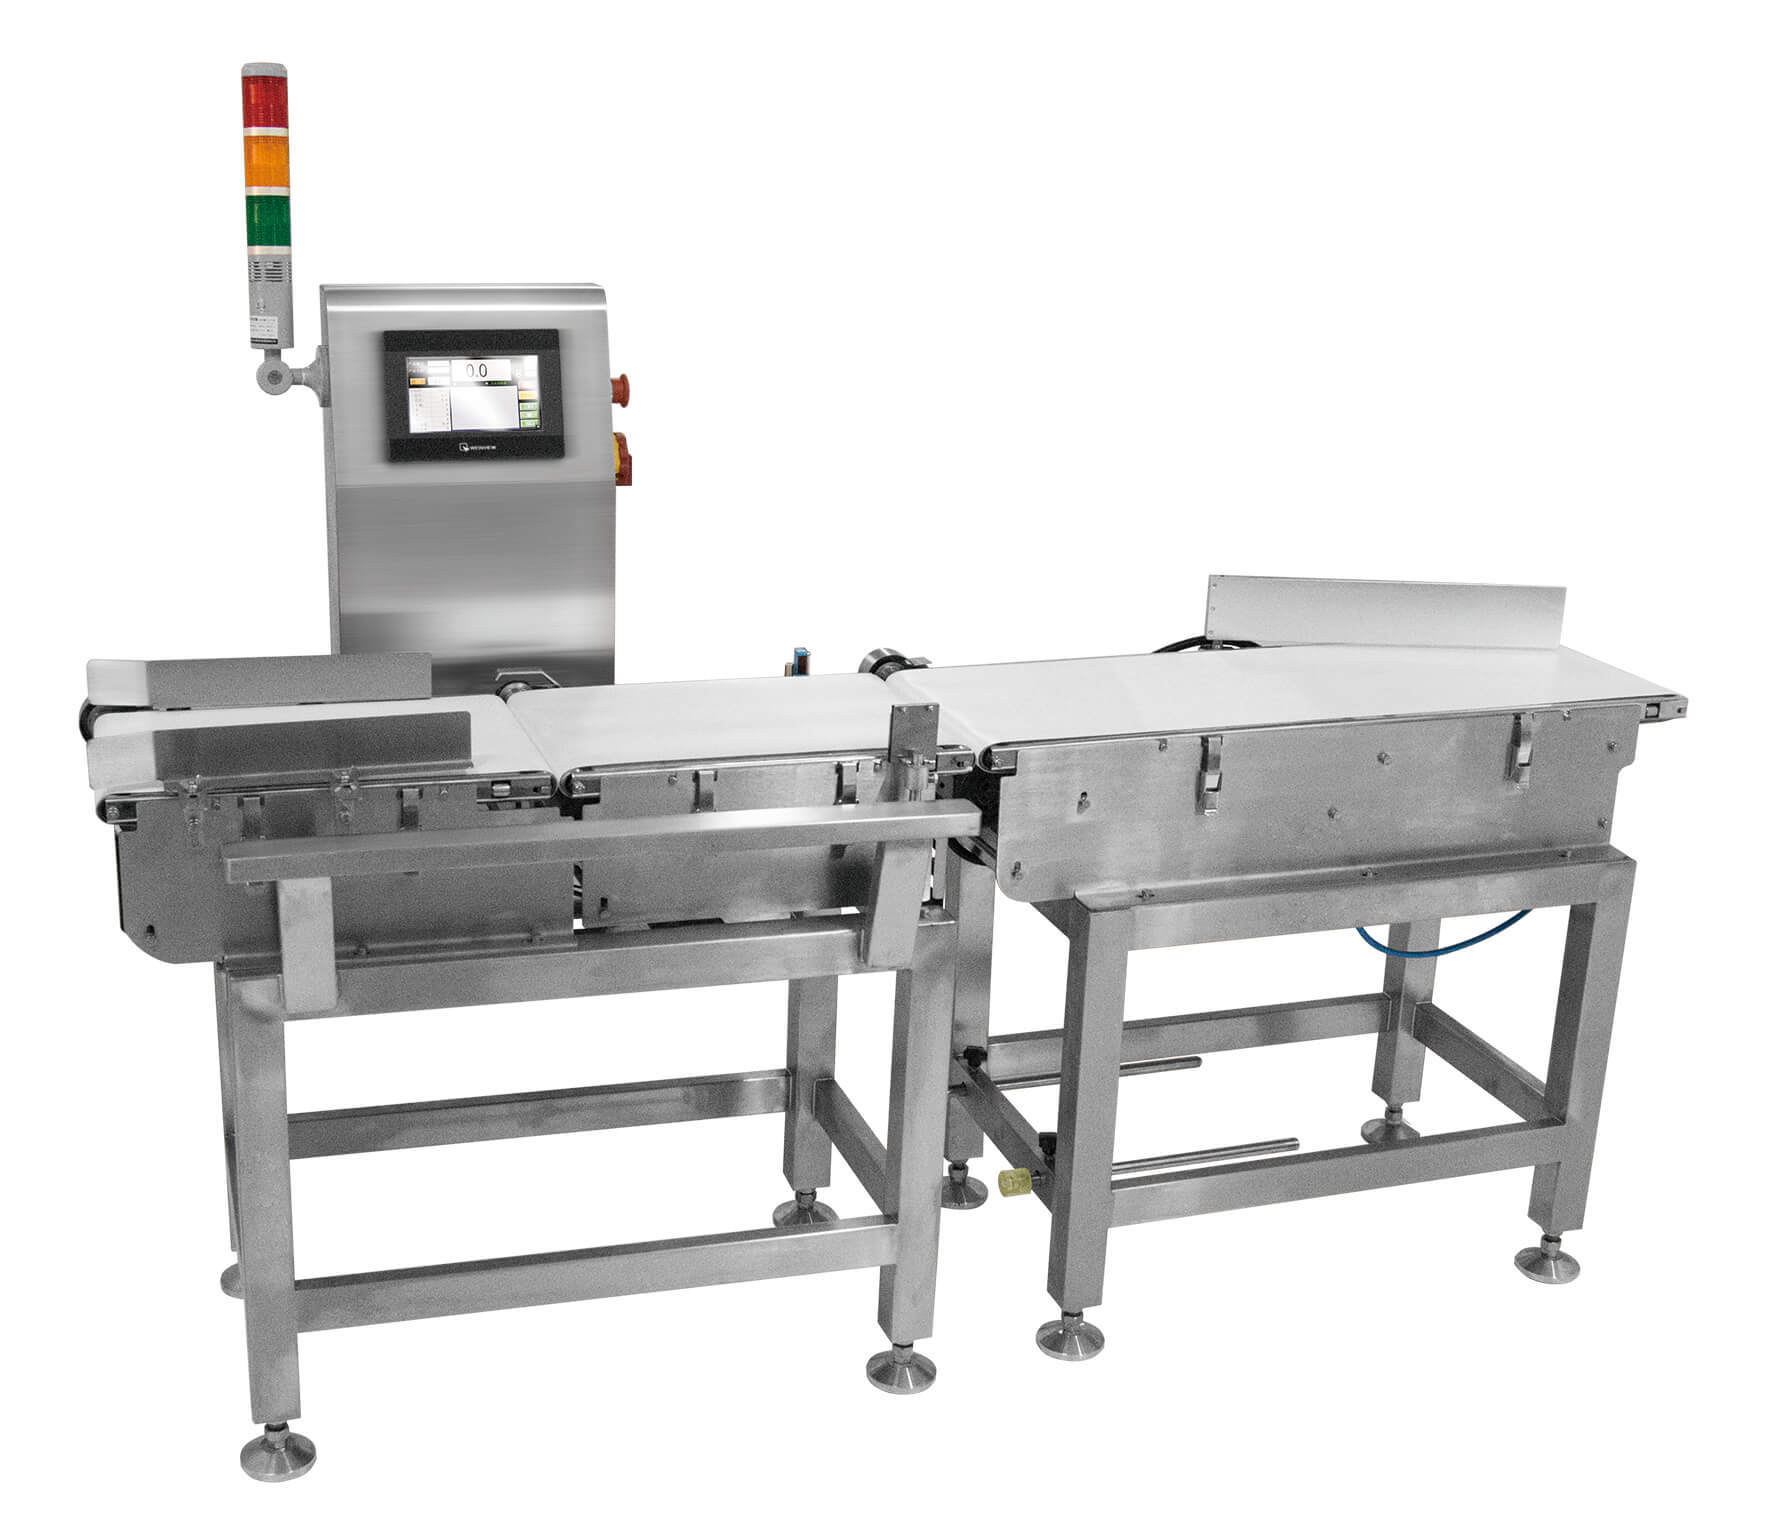 checkweigher for packaging goods